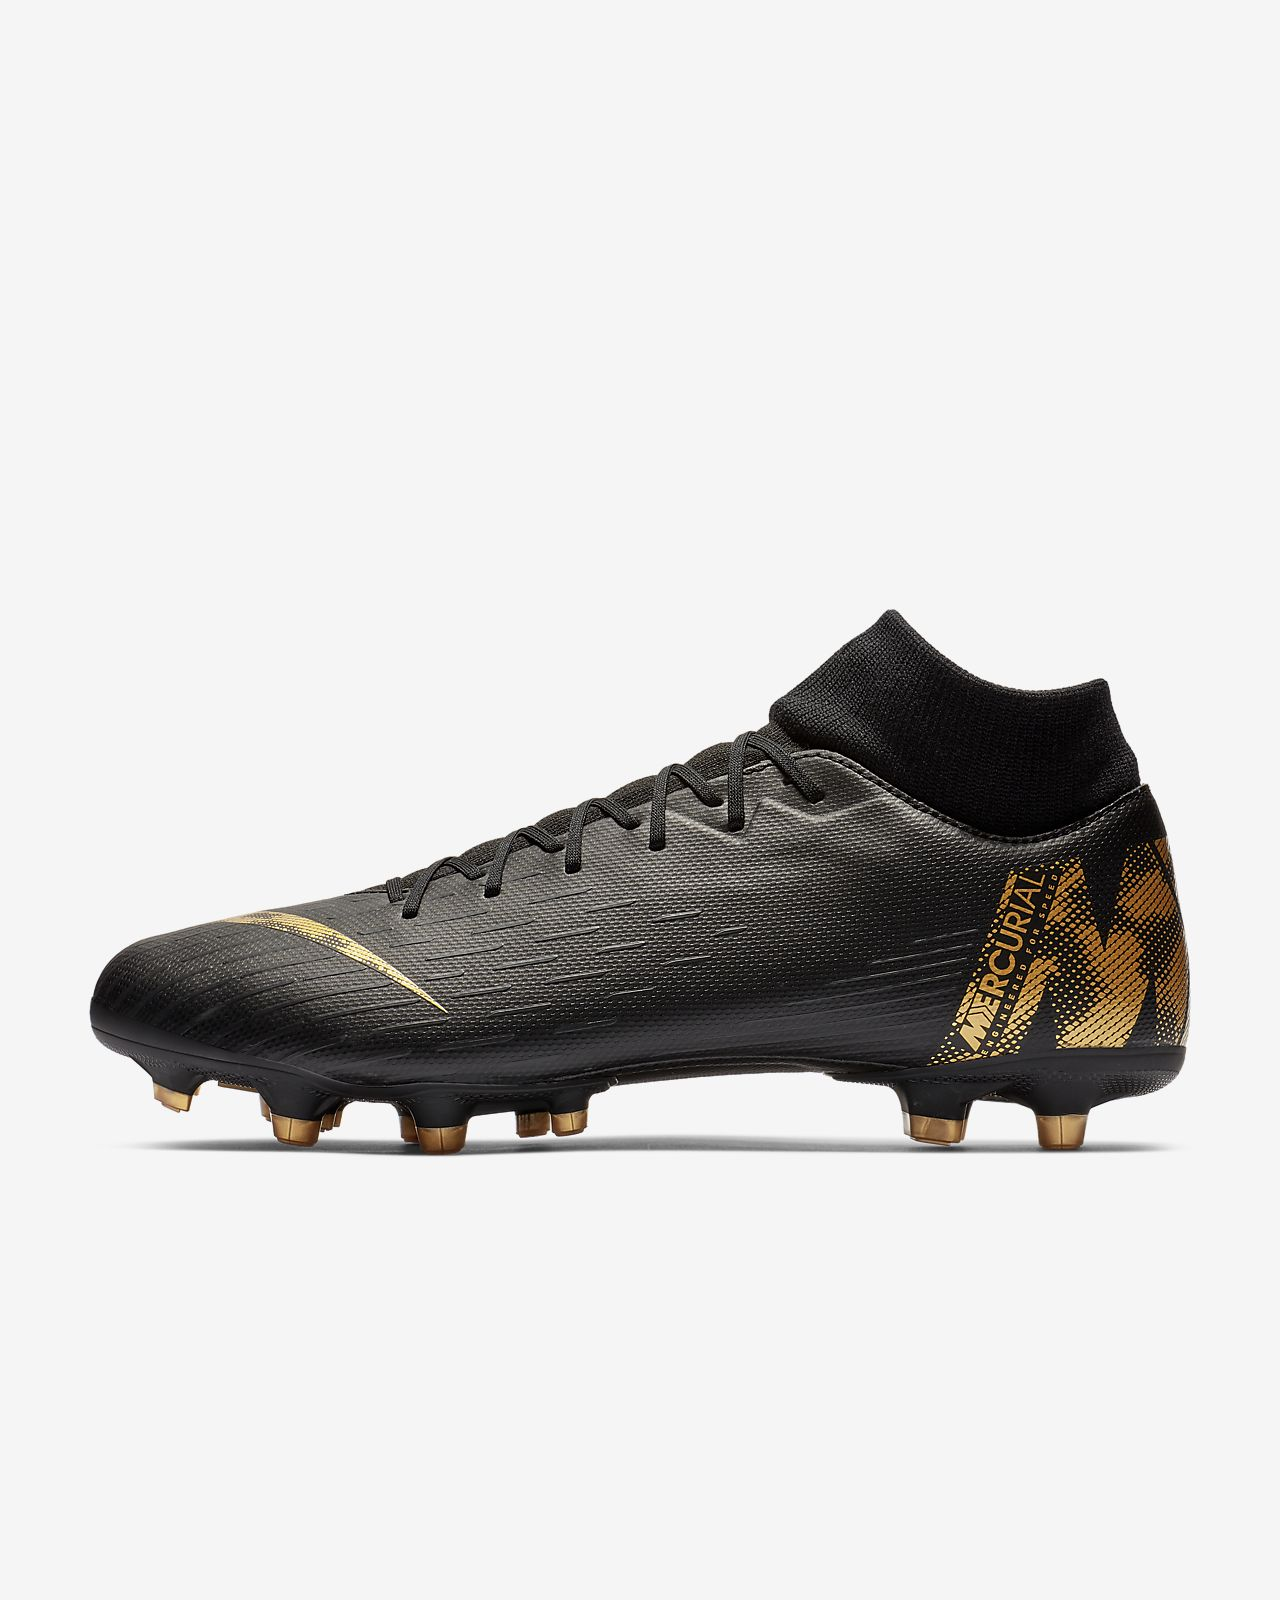 6cfb17da8 Nike Mercurial Superfly 6 Academy MG Multi-Ground Soccer Cleat. Nike.com